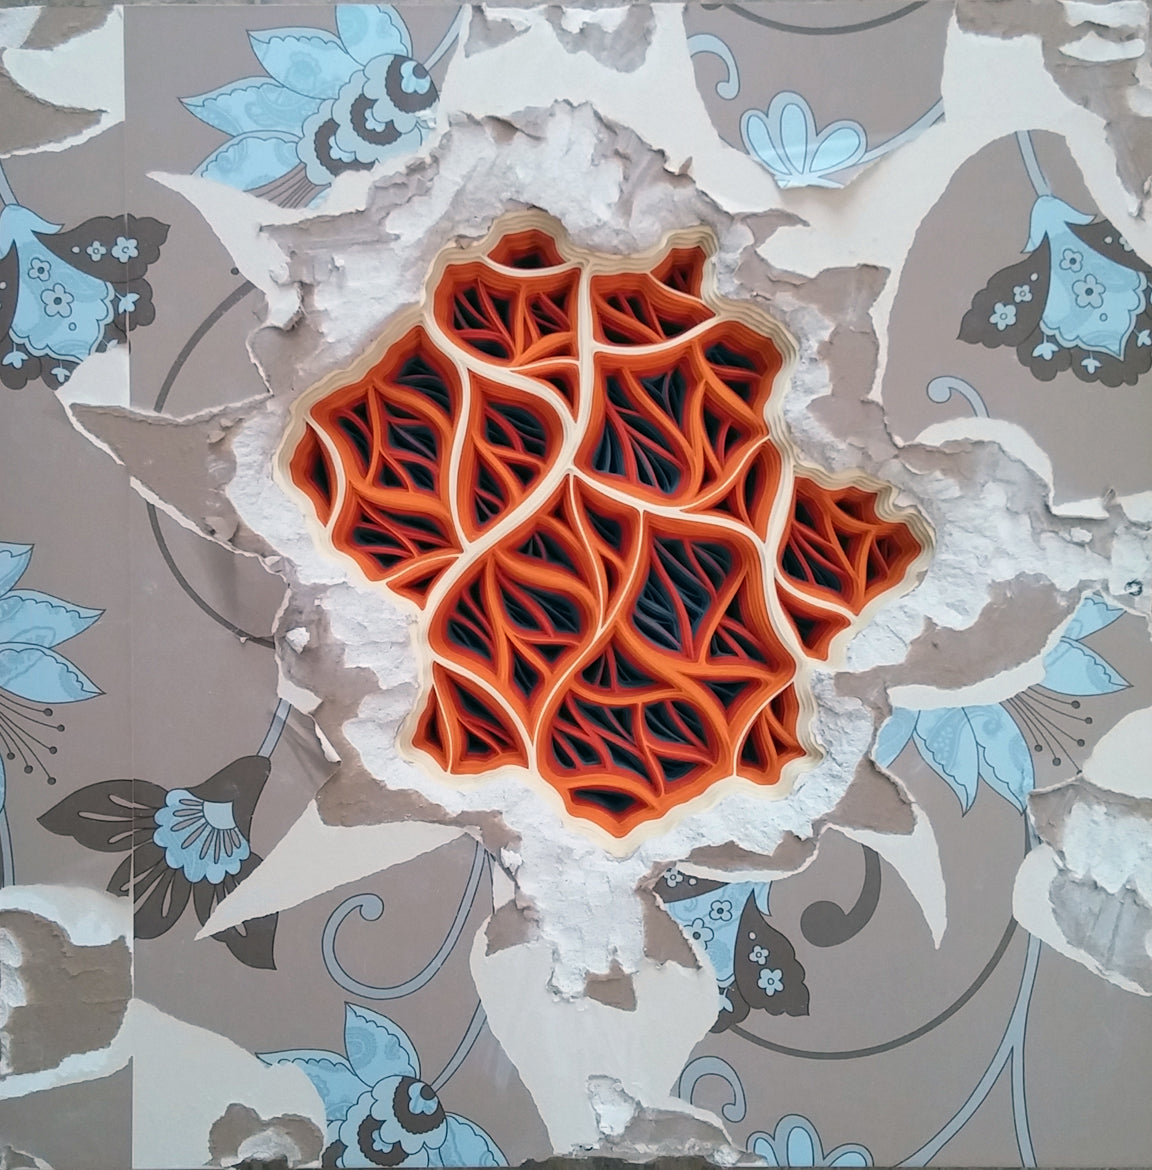 Charles Clary_Flam-a-Pleural Effusion Movement #3 Clary 1_2015_Hand cut paper and wallpaper on distressed drywall_24 x 24 x 4 in_ Photo by Clary